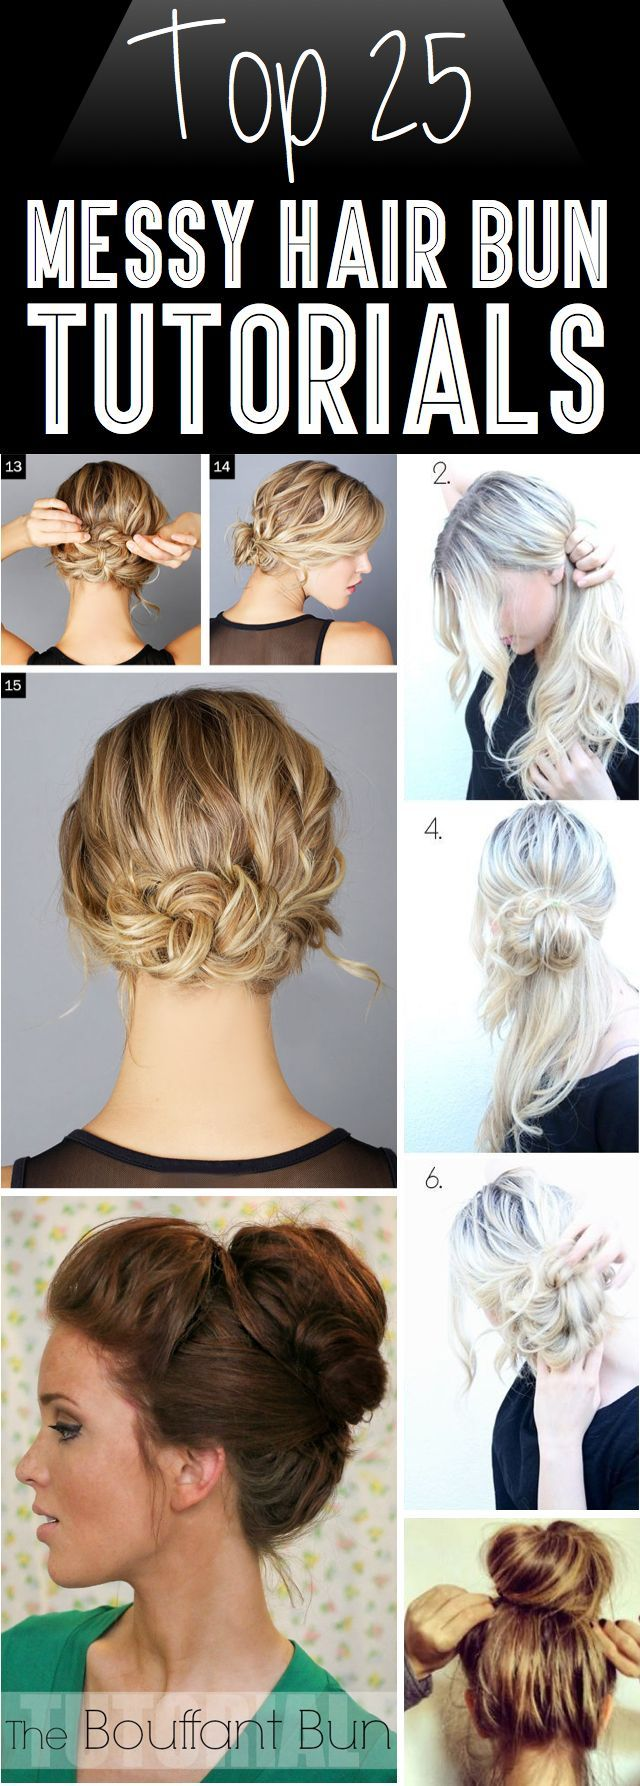 best hairstyles for long hair images on pinterest long hair